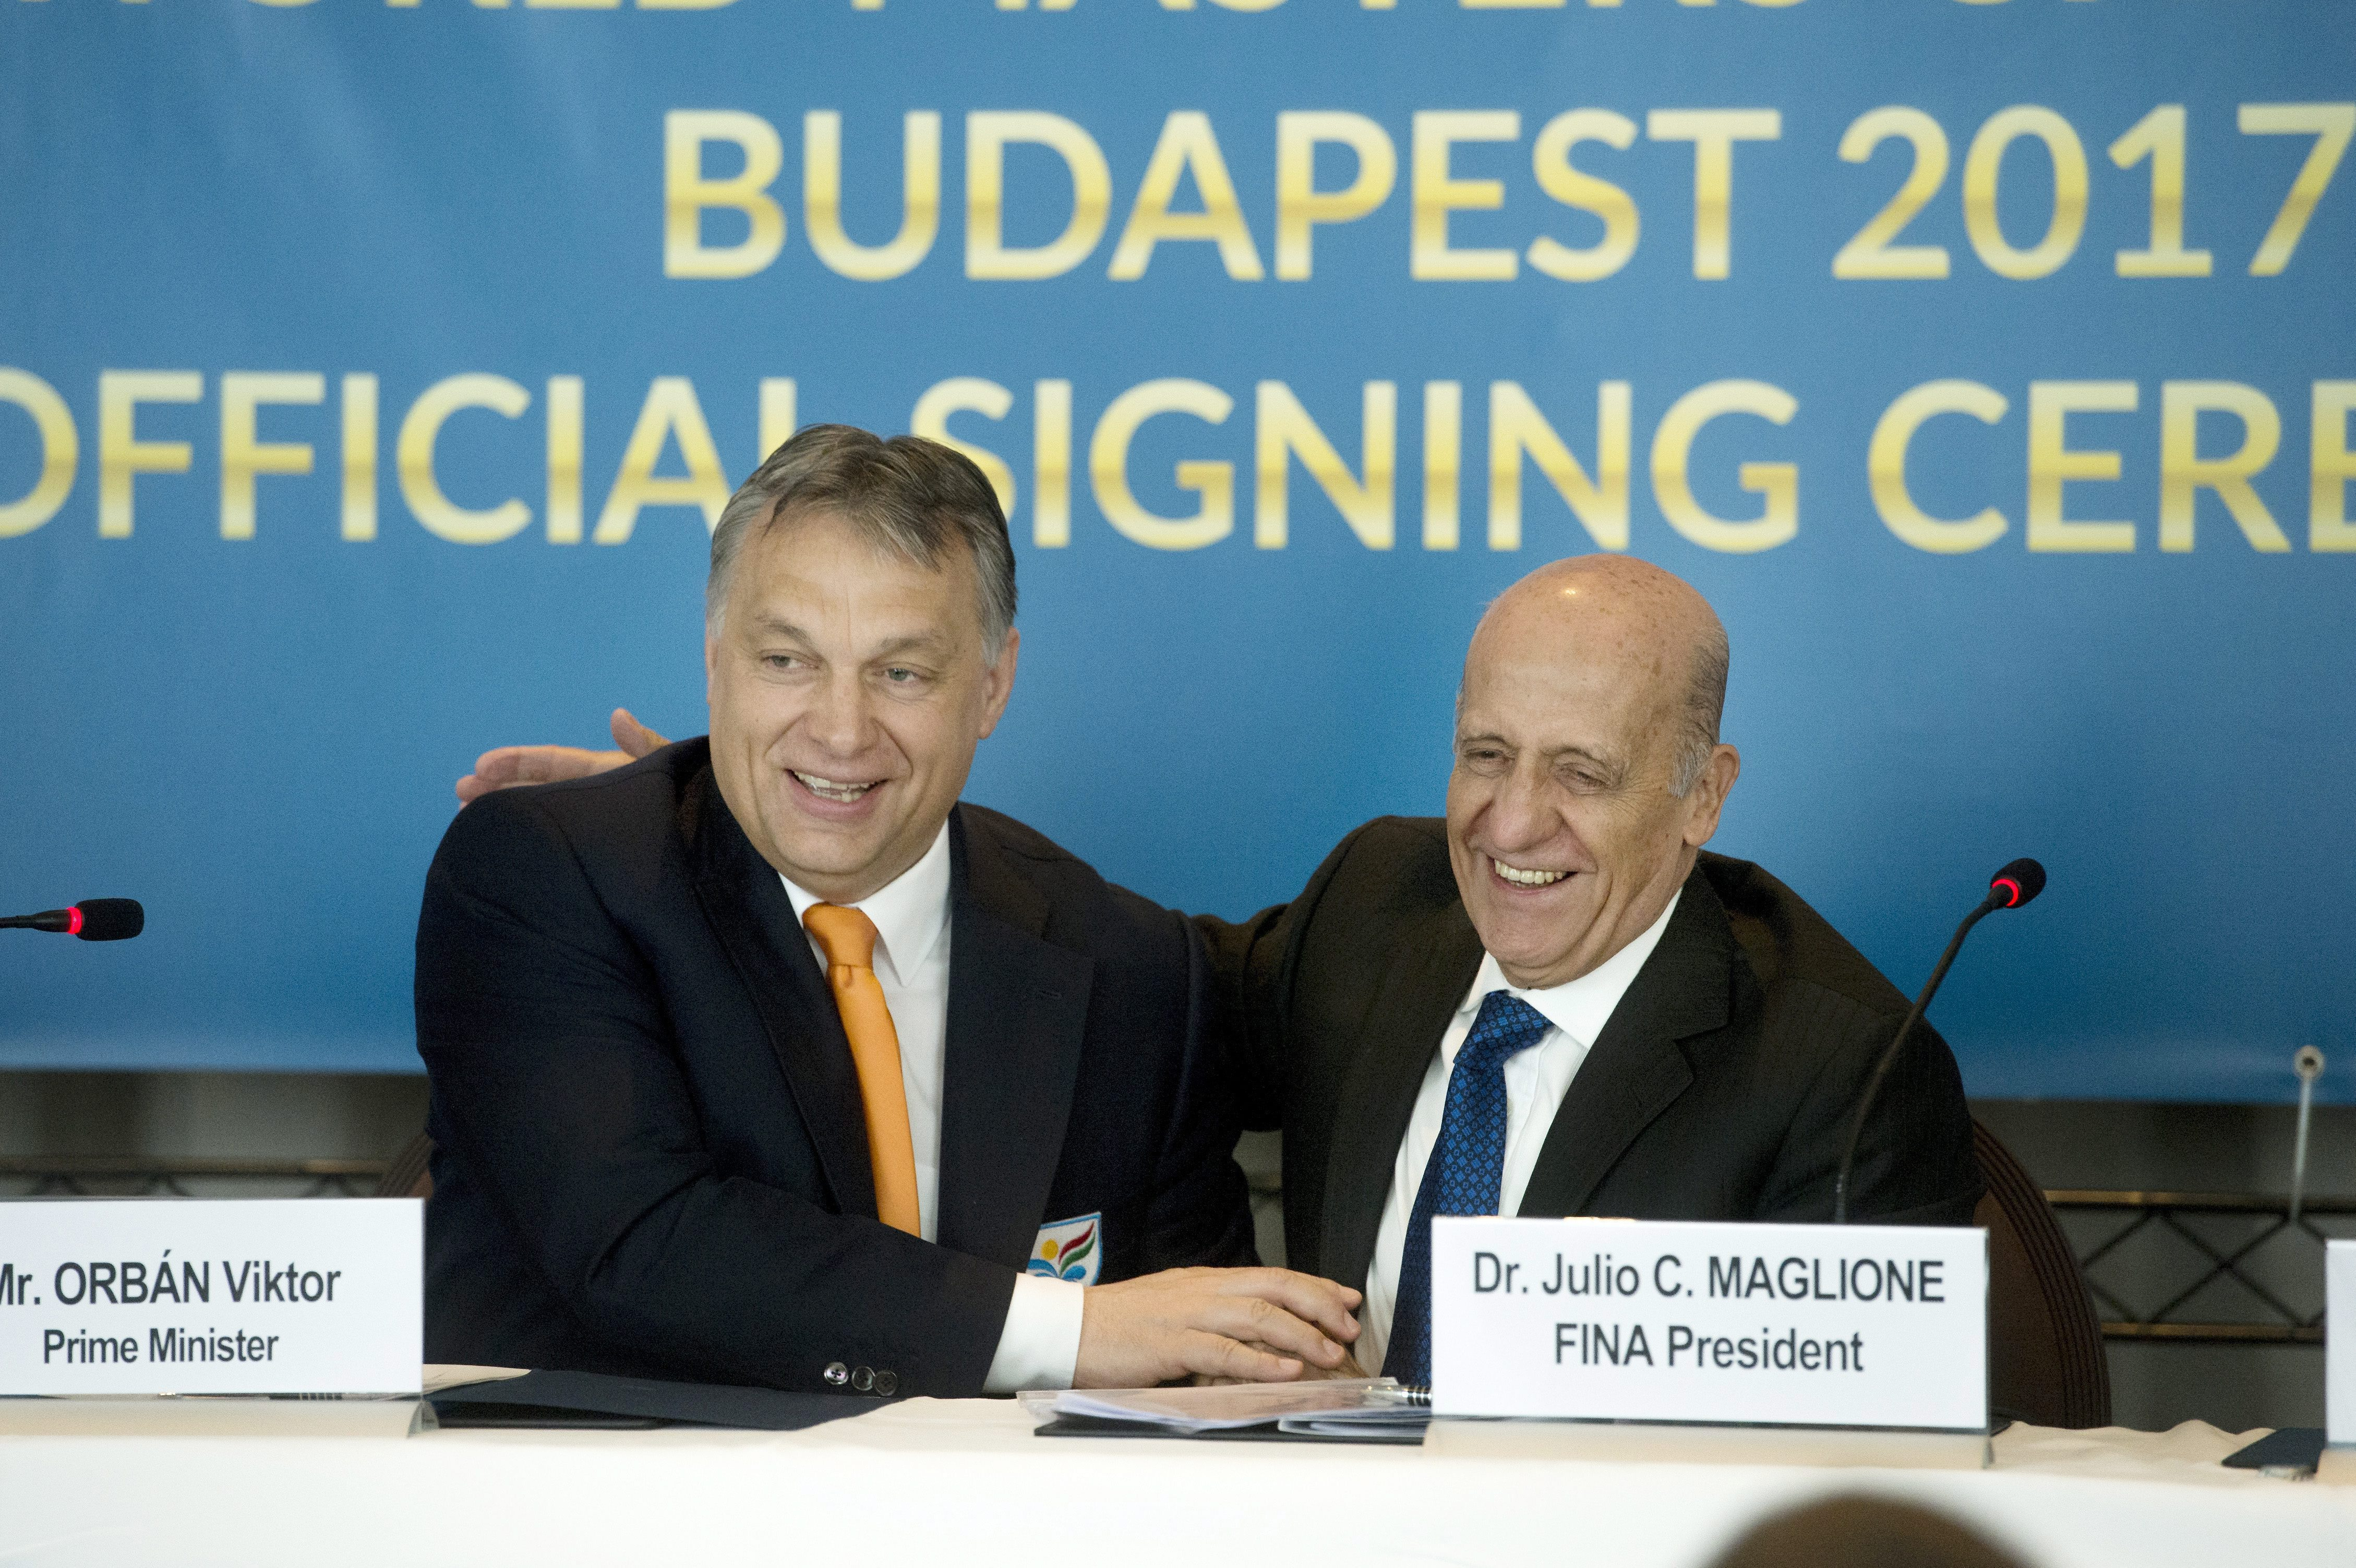 Hungarian Prime Minister Viktor Orban, left, and FINA President Julio C. Maglione smile as they sign an agreement on Budapest's hosting the World Aquatics Championships in 2017 in Hotel Palace in Lausanne, Switzerland, Thursday, April 16, 2015. Budapest r